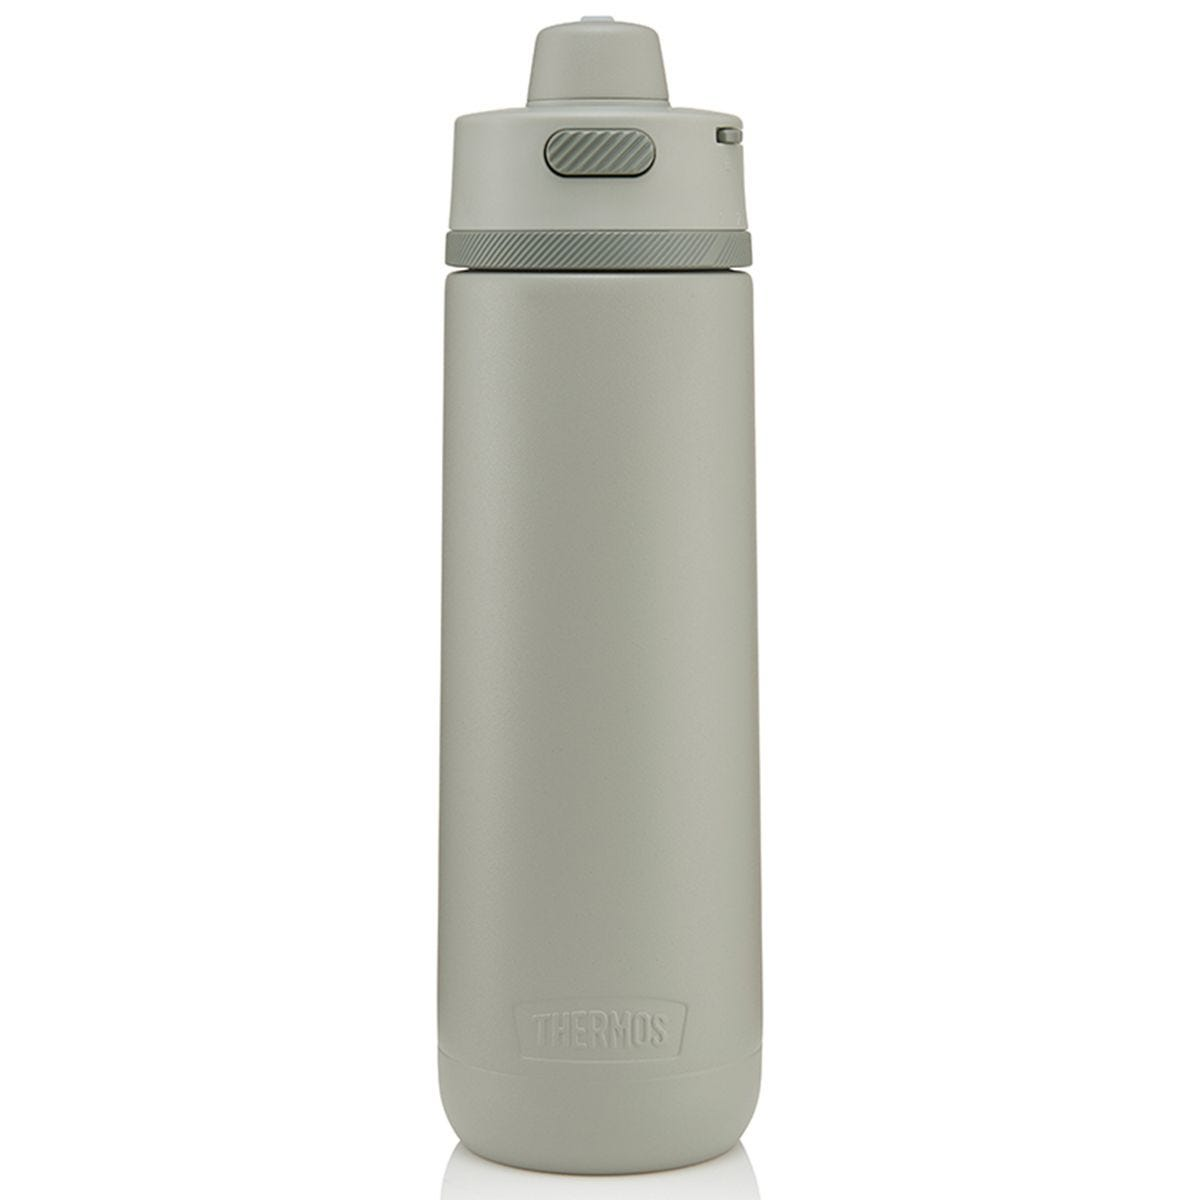 Thermos Guardian Stainless Steel Hydration Bottle 710ml - Green